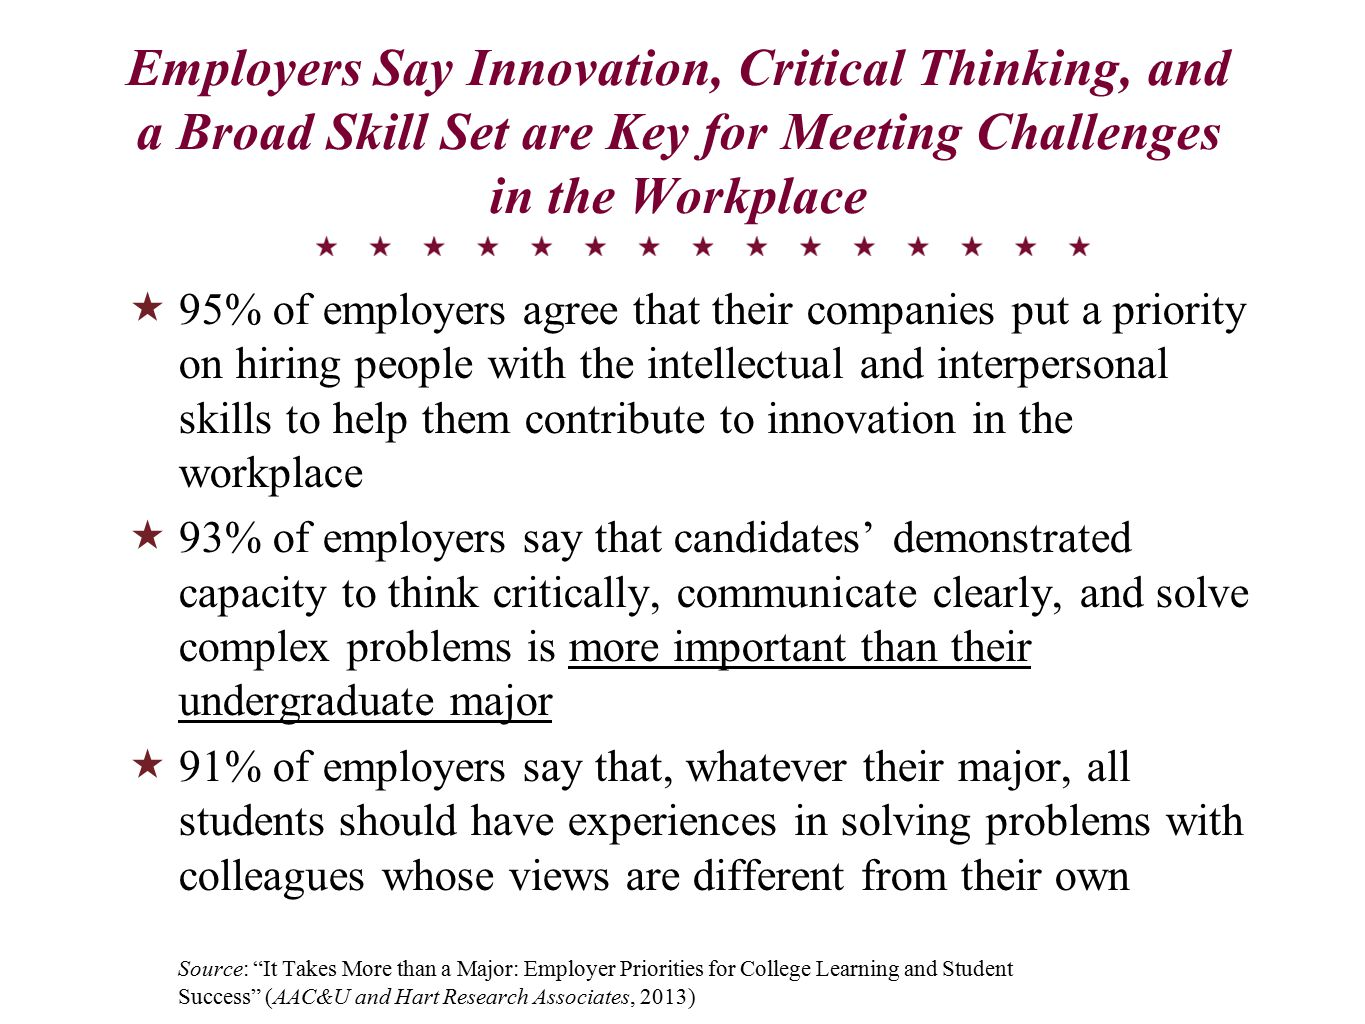 Employers Say Innovation, Critical Thinking, and a Broad Skill Set are Key for Meeting Challenges in the Workplace  95% of employers agree that their